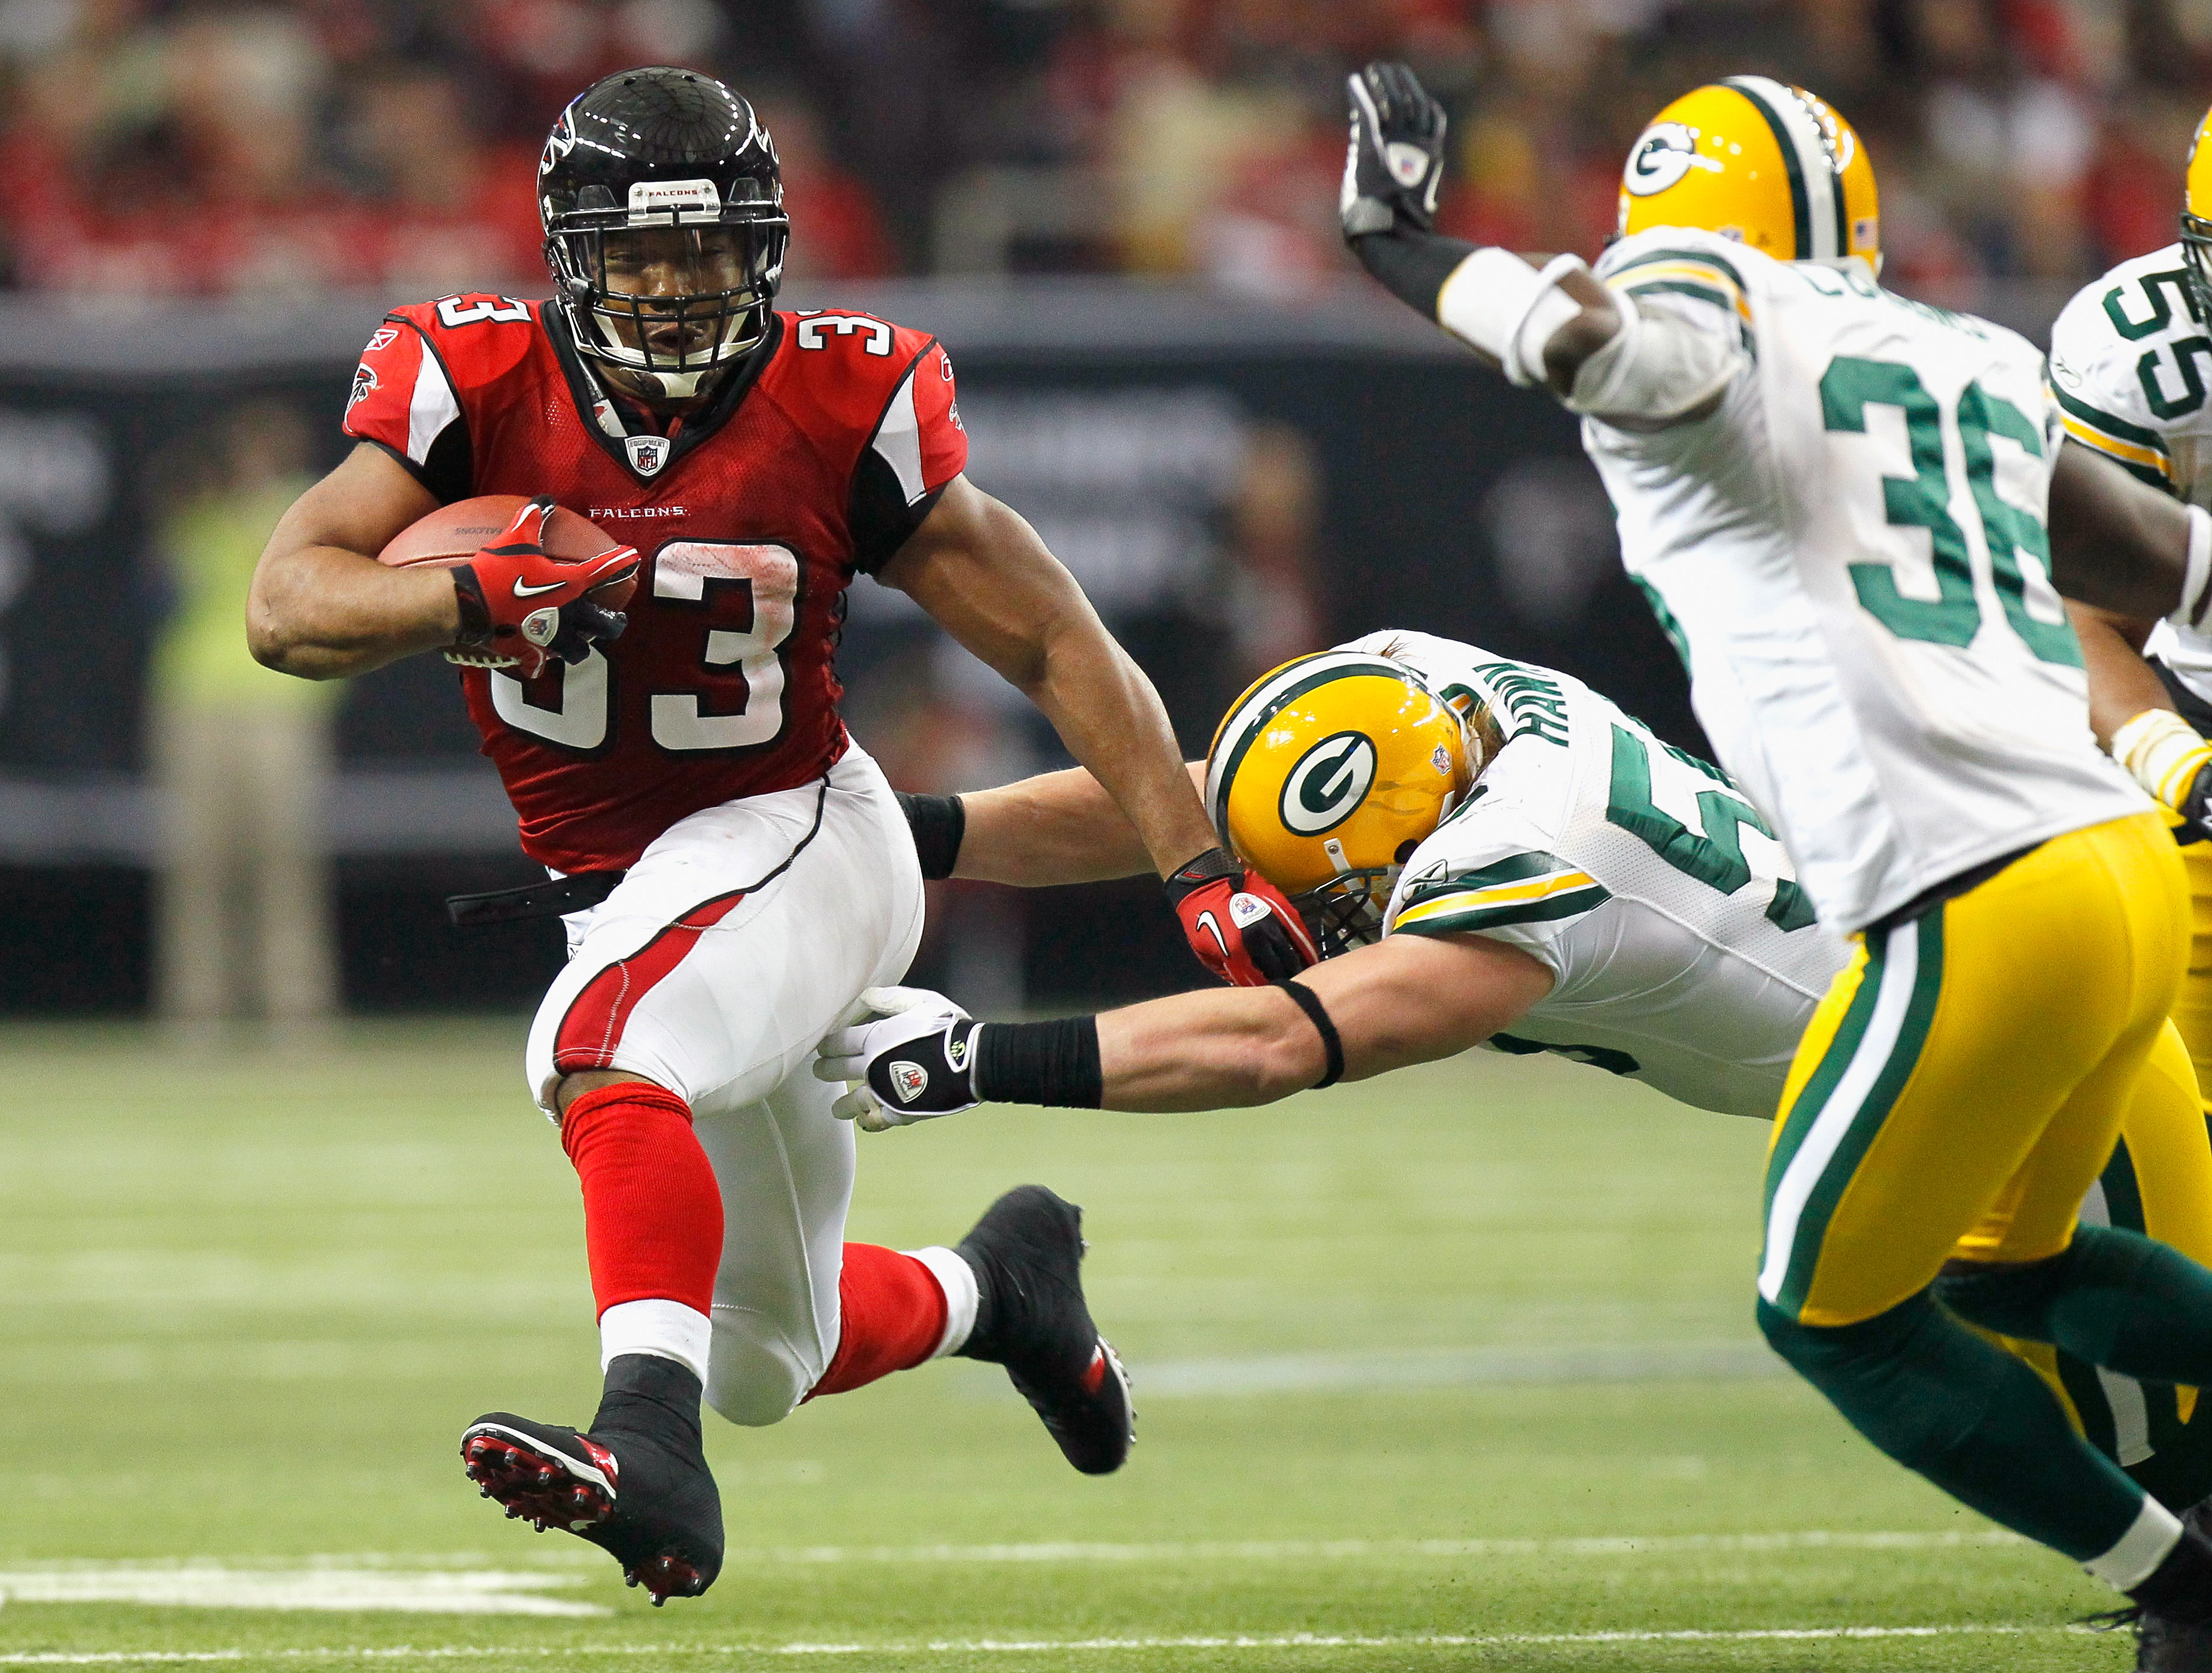 ATLANTA - NOVEMBER 28:  Michael Turner #33 of the Atlanta Falcons rushes rushes upfield away from A.J. Hawk #50 and Nick Collins #36 of the Green Bay Packers at Georgia Dome on November 28, 2010 in Atlanta, Georgia.  (Photo by Kevin C. Cox/Getty Images)